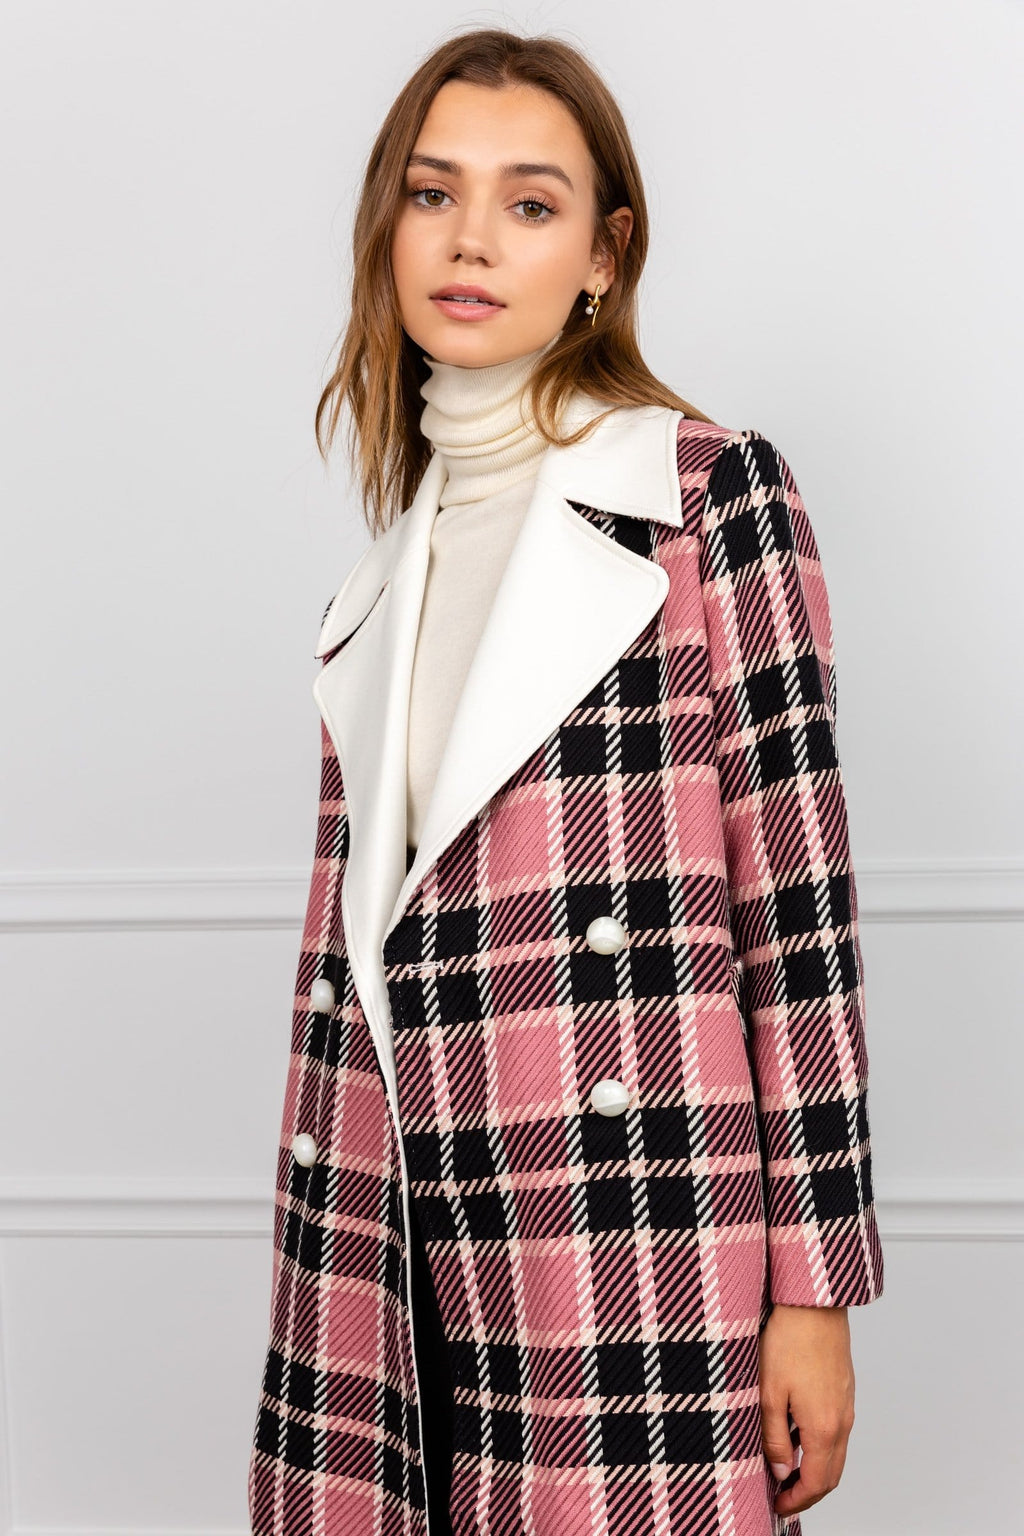 Franny Pink Plaid Coat by J.ING Women's Apparel